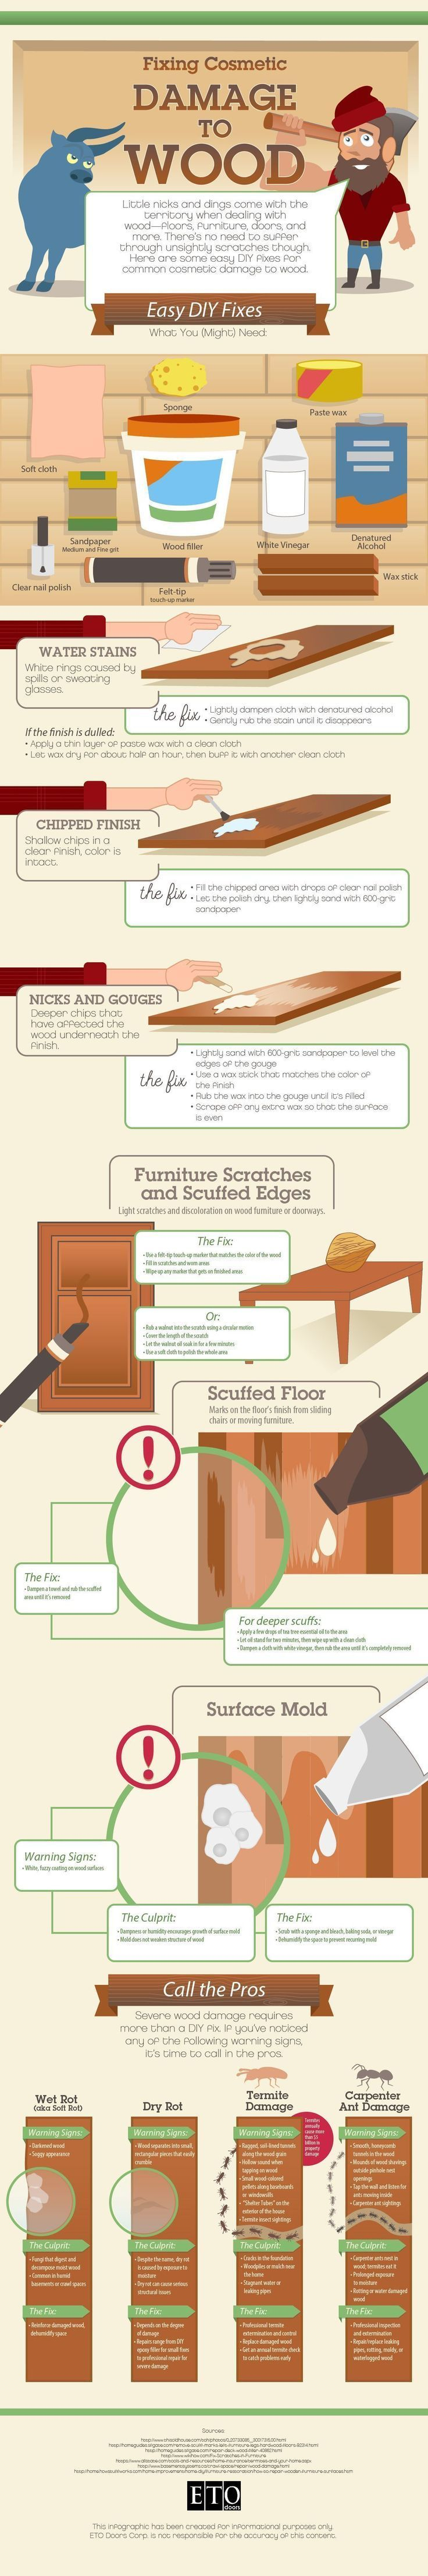 fixing cosmetic damage to wood infographic woodworkinginfographic diy ideas in 2018 pinterest houtbewerking hout and houtwerk [ 736 x 4428 Pixel ]